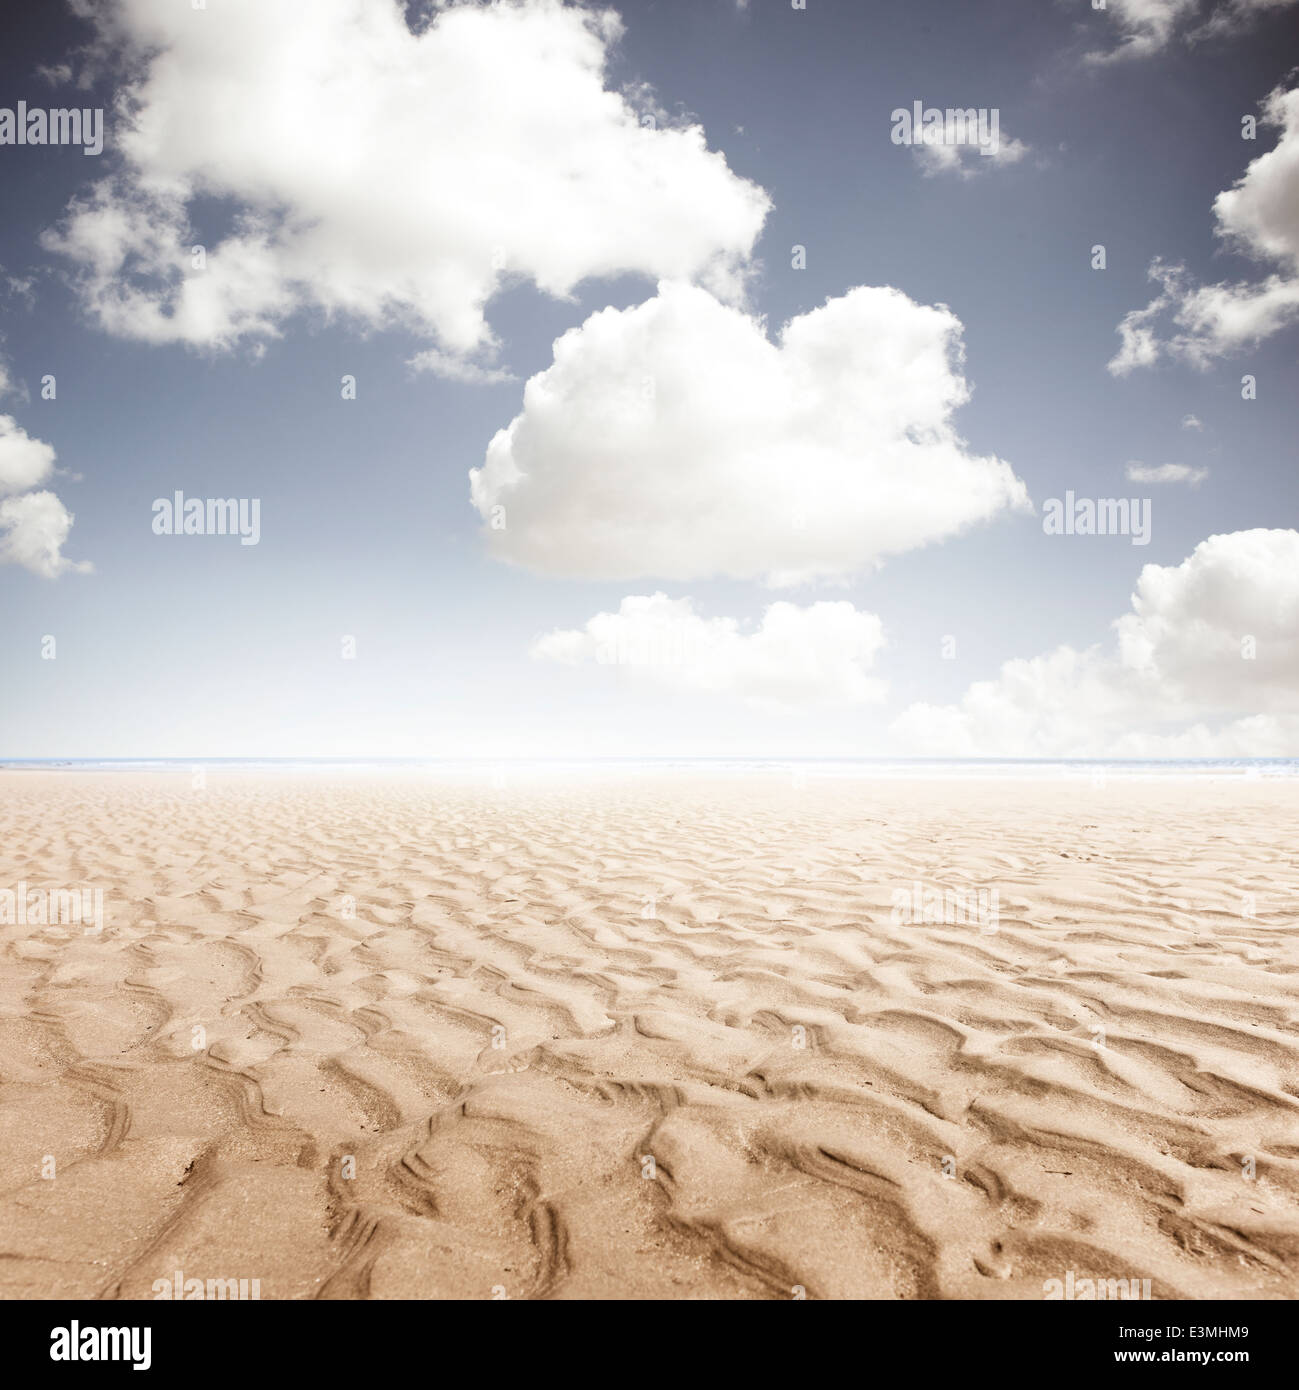 Beach background with ripples in the sand. - Stock Image